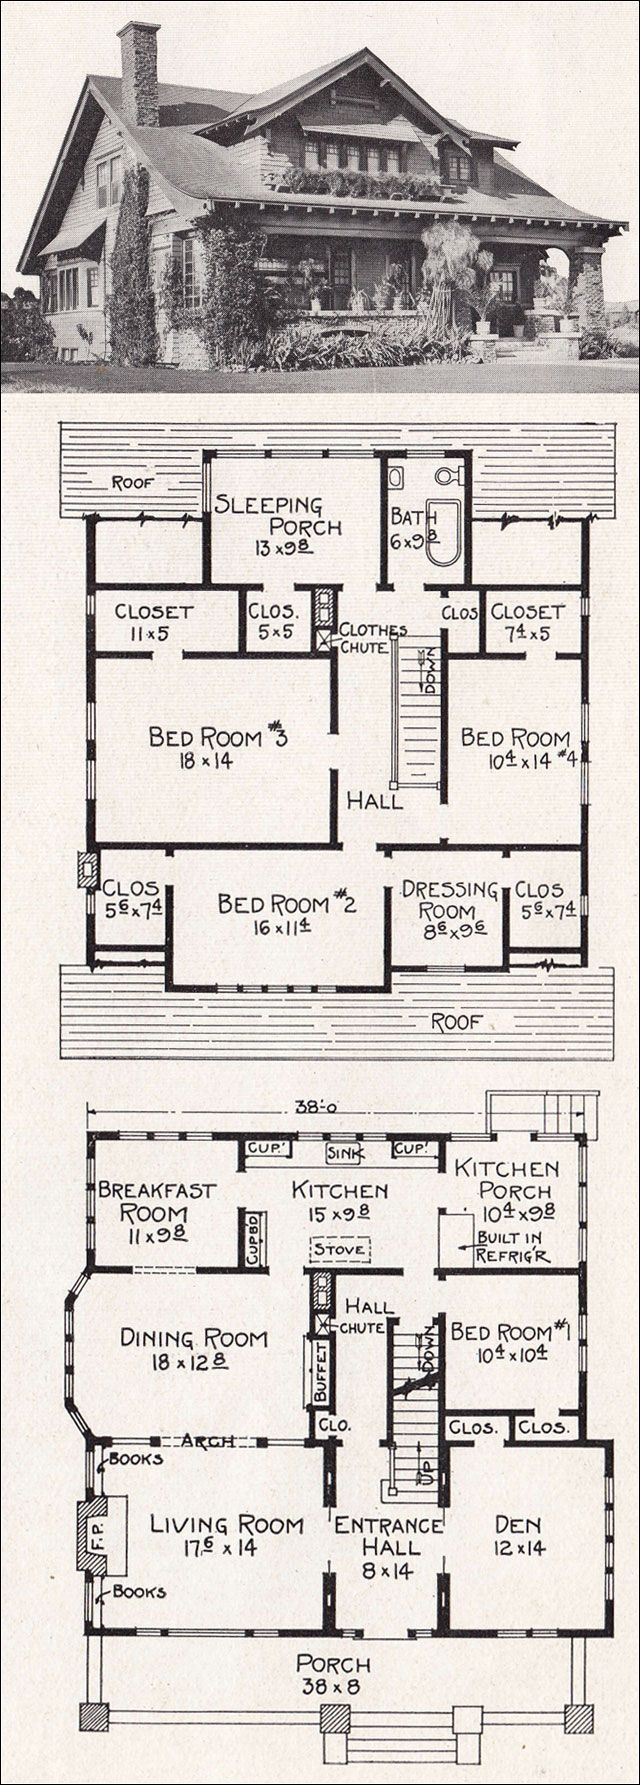 25 best ideas about craftsman bungalow decor on pinterest bungalow style house bungalow exterior and craftsman style houses